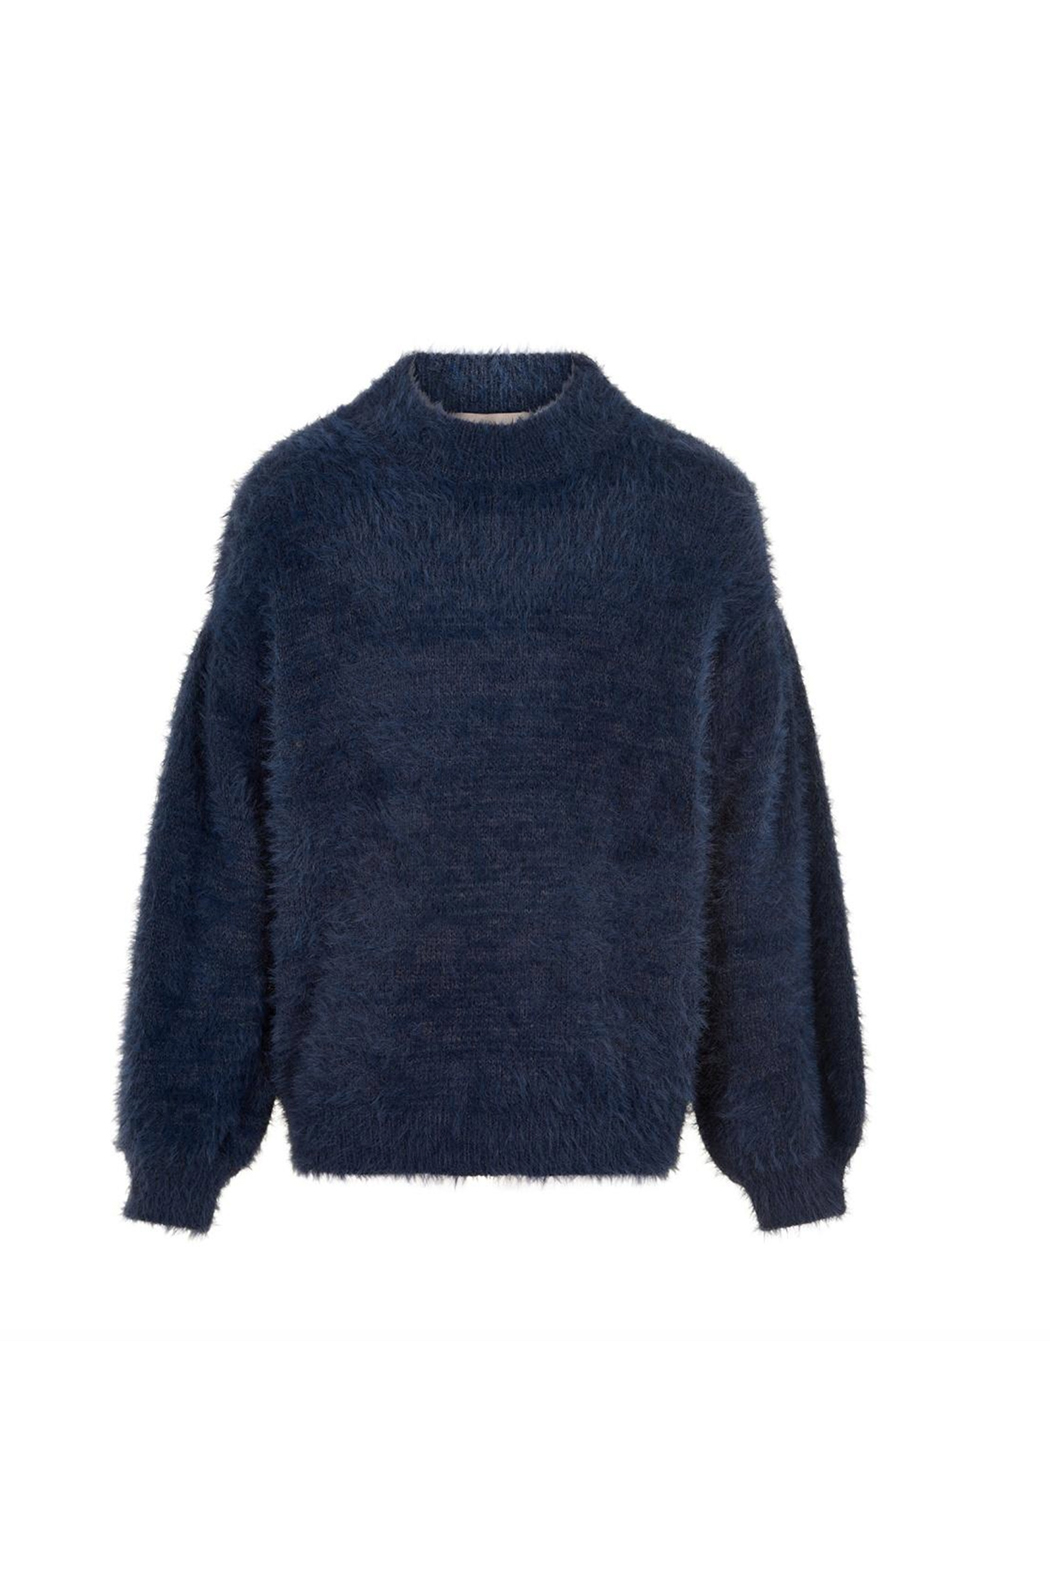 Creamie Soft Pullover Sweater - Main Image